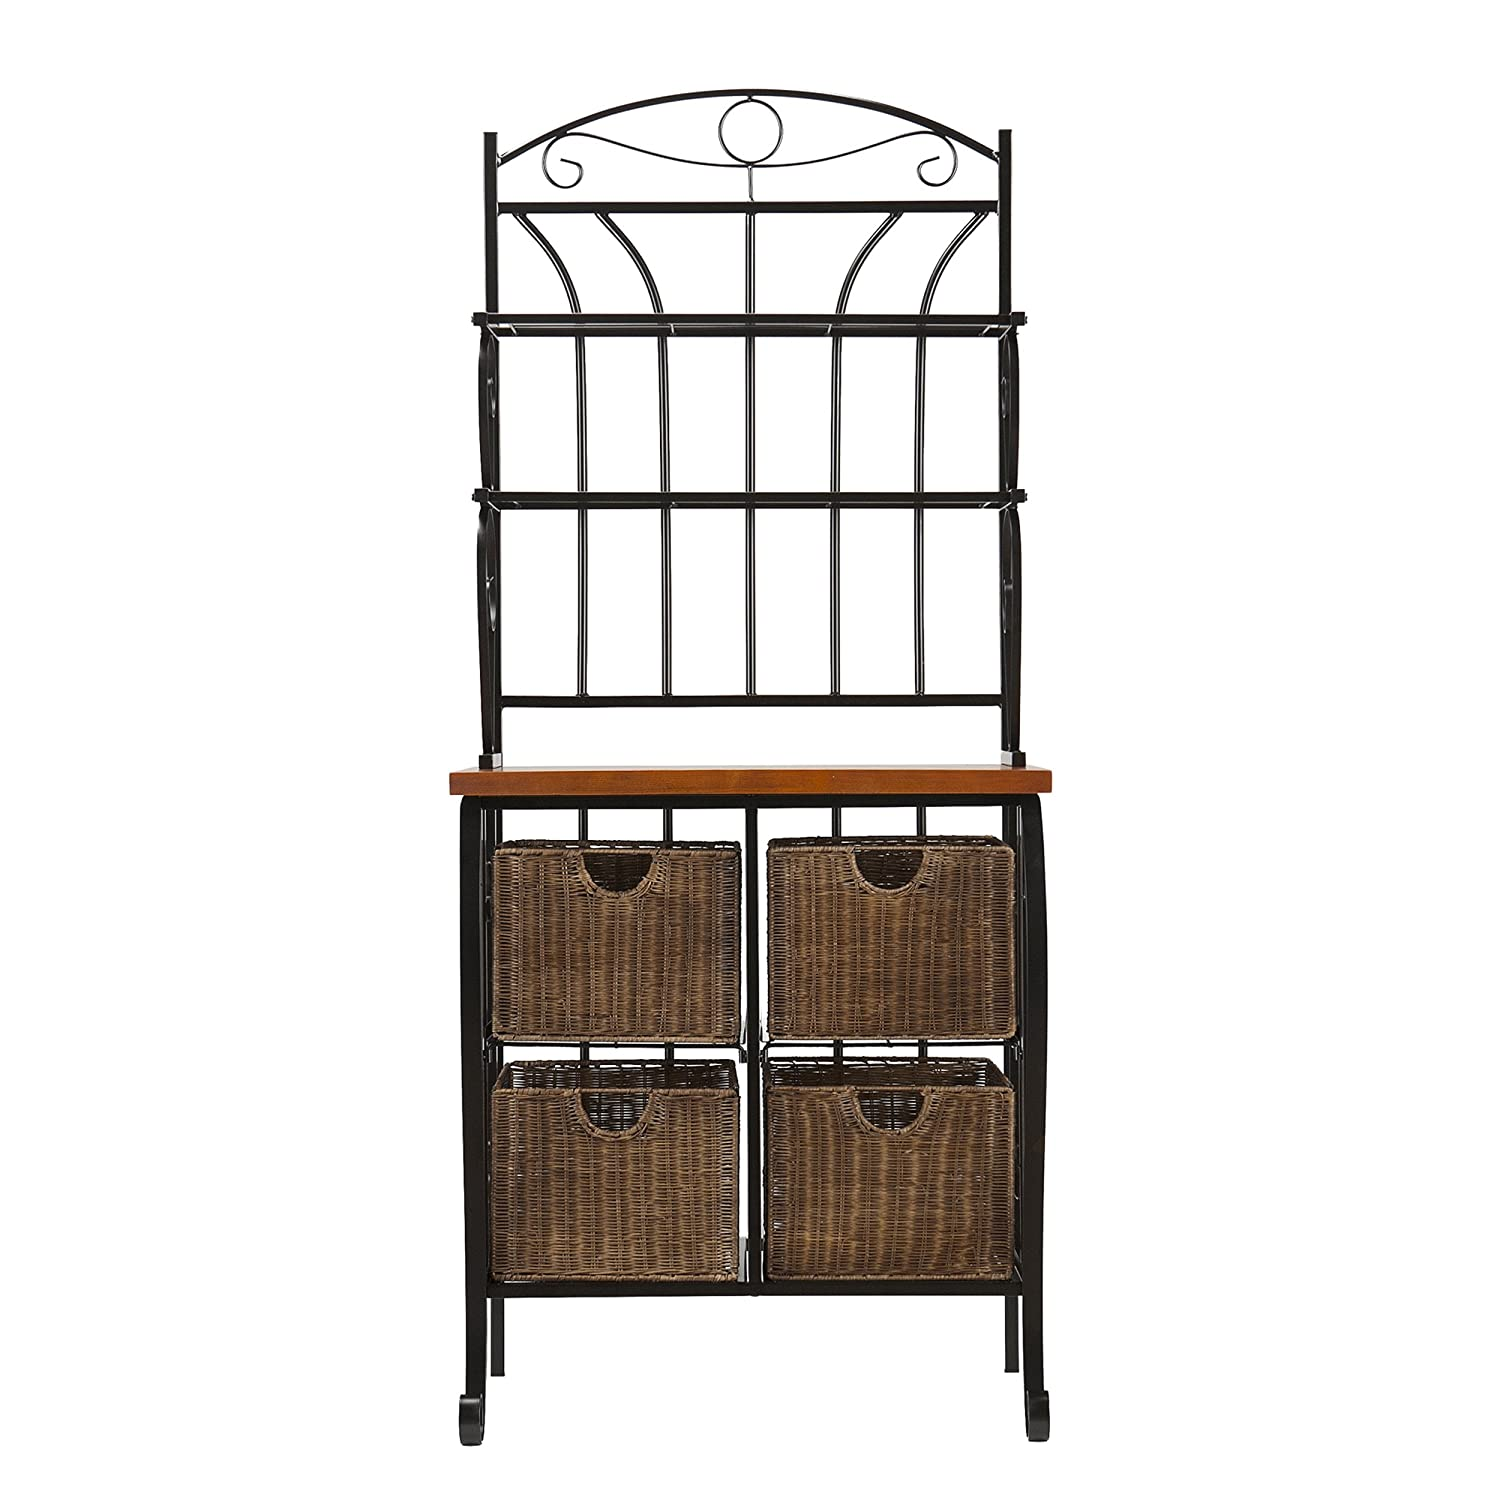 Southern Enterprises Wrought Iron Bakers Rack with Scroll Work Black Finish